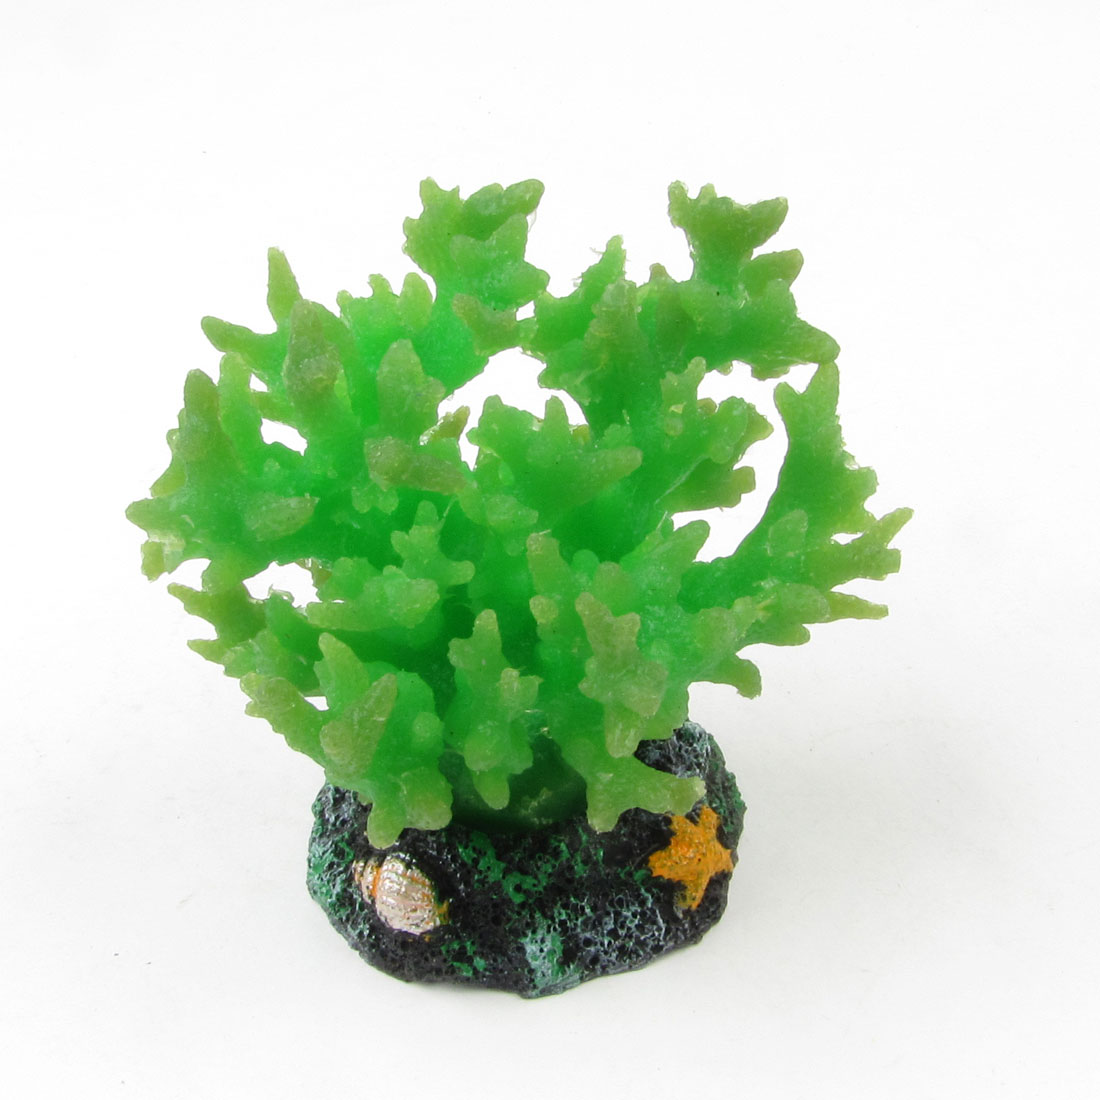 Green Soft Silicone Coral Black Ceramic Base Ornament for Aquarium Fish Tank